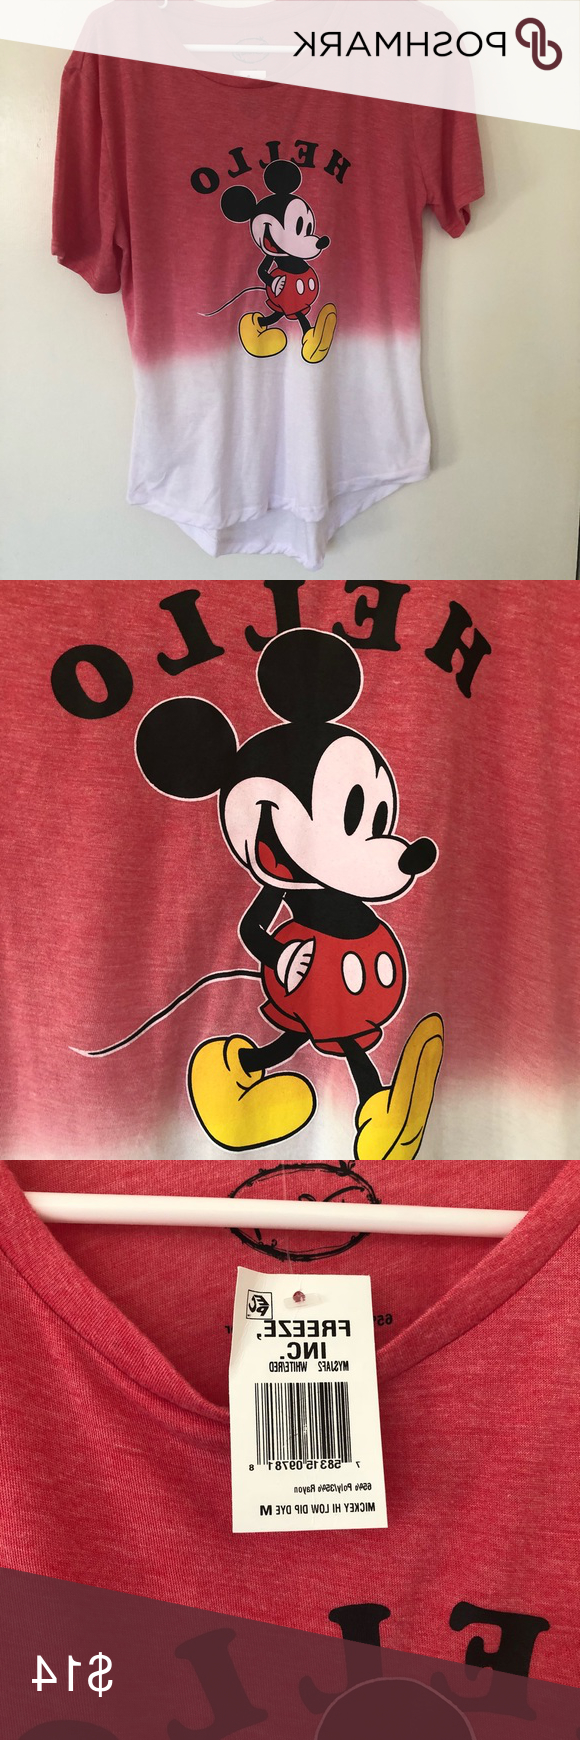 Belleair Bluffs Outdoor Barn Lights In Preferred Disney Mickey Mouse Ombré Graphic Shirt (View 14 of 17)